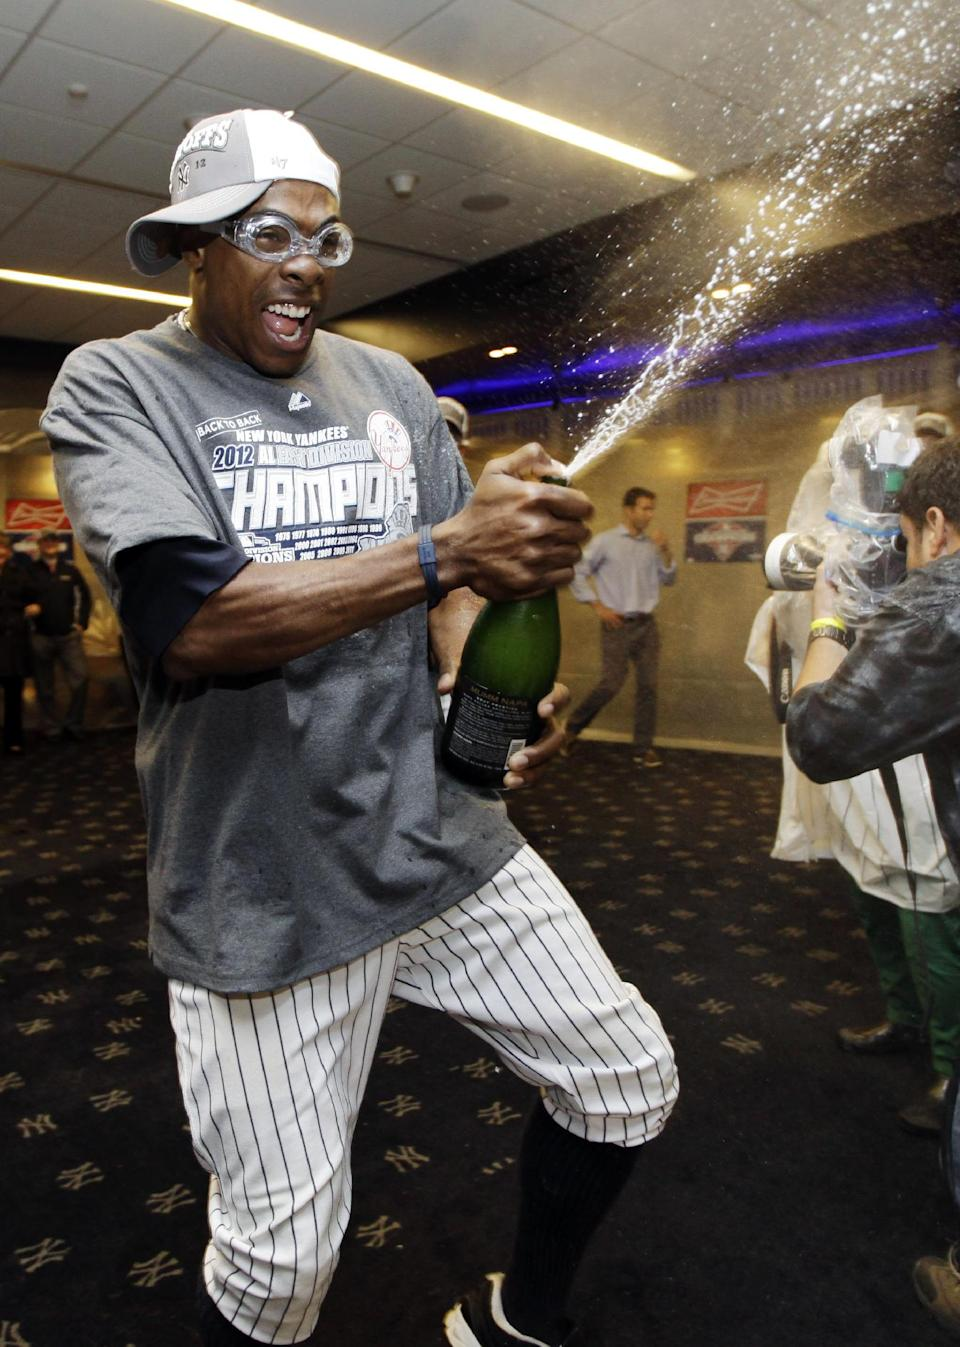 New York Yankees' Curtis Granderson celebrates in the clubhouse after their 14-2 win over the Boston Red Sox in a baseball game at Yankee Stadium in New York, Wednesday, Oct. 3, 2012. The Yankees clinched the American League East title. (AP Photo/Kathy Willens)